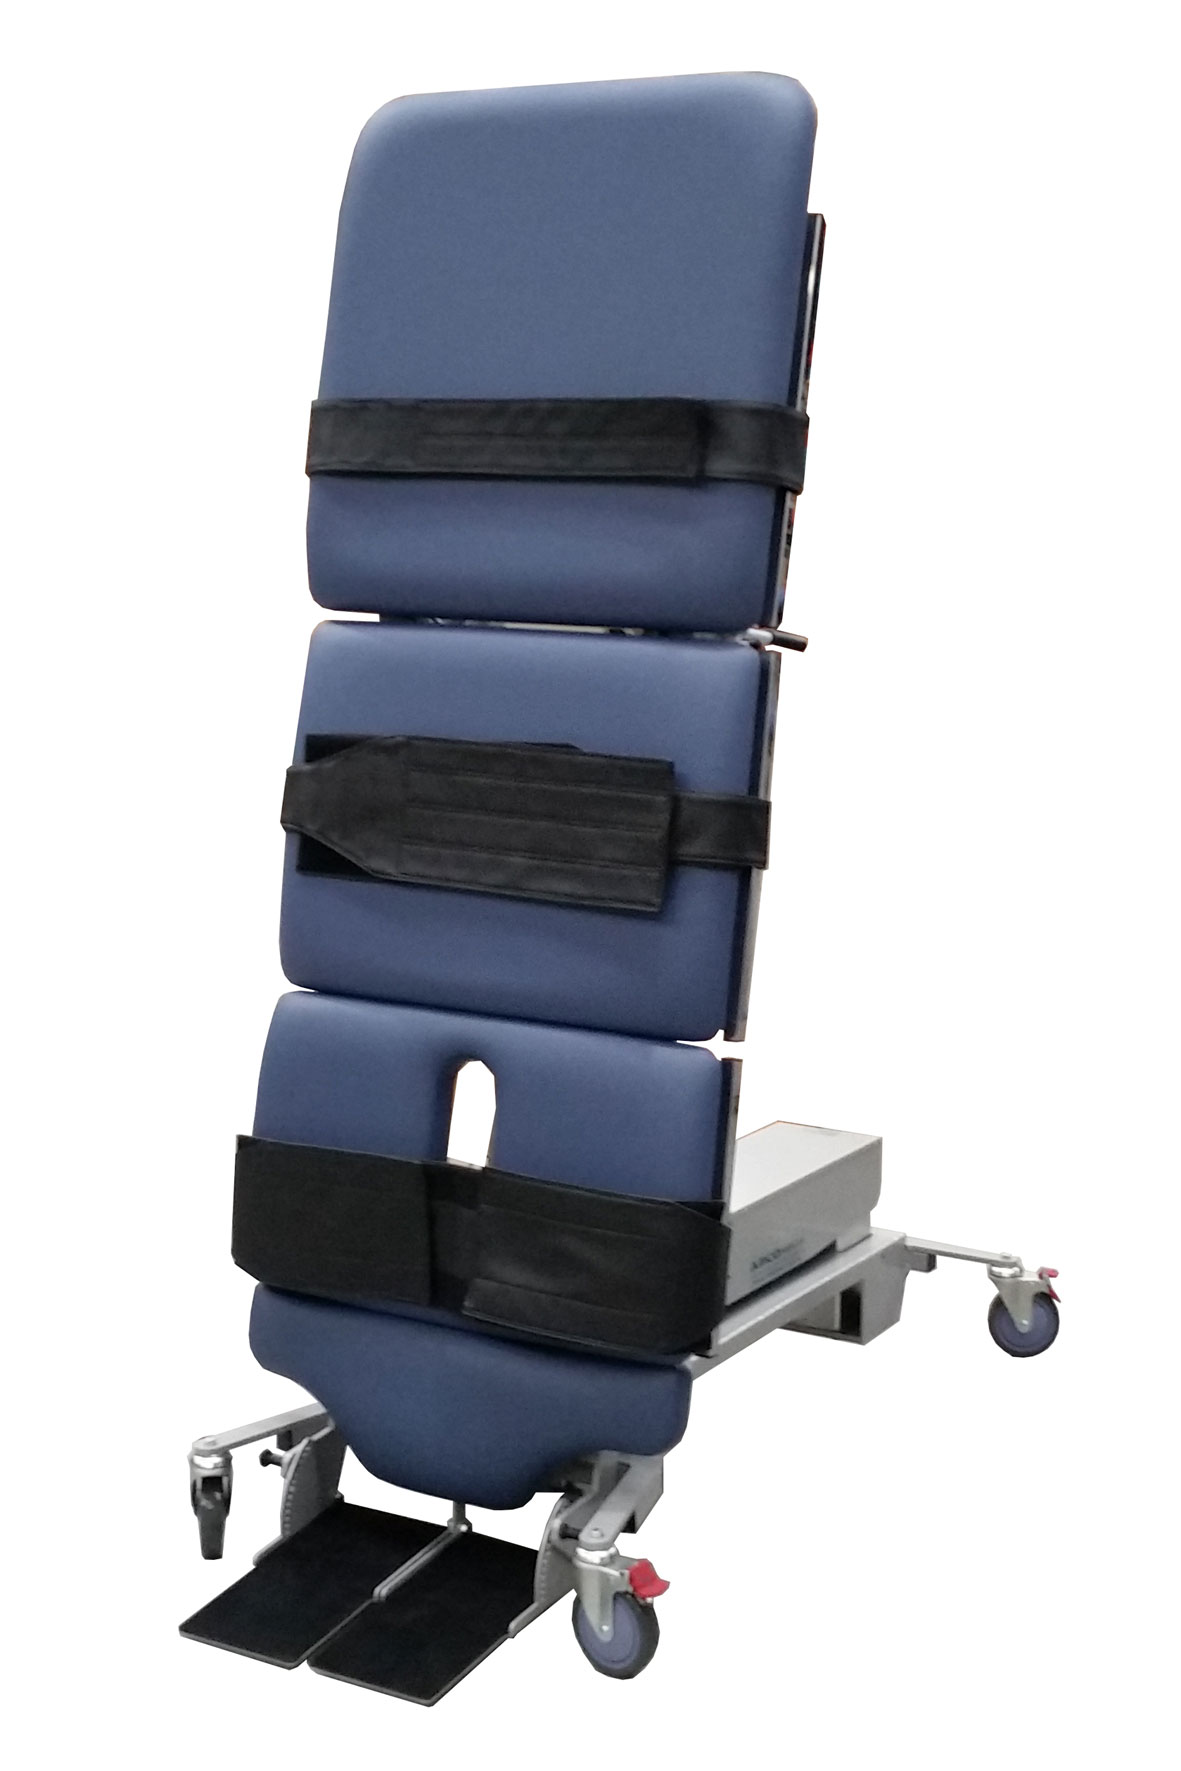 used massage chairs for sale small upholstered swivel chair abco health care dynamic tilt table